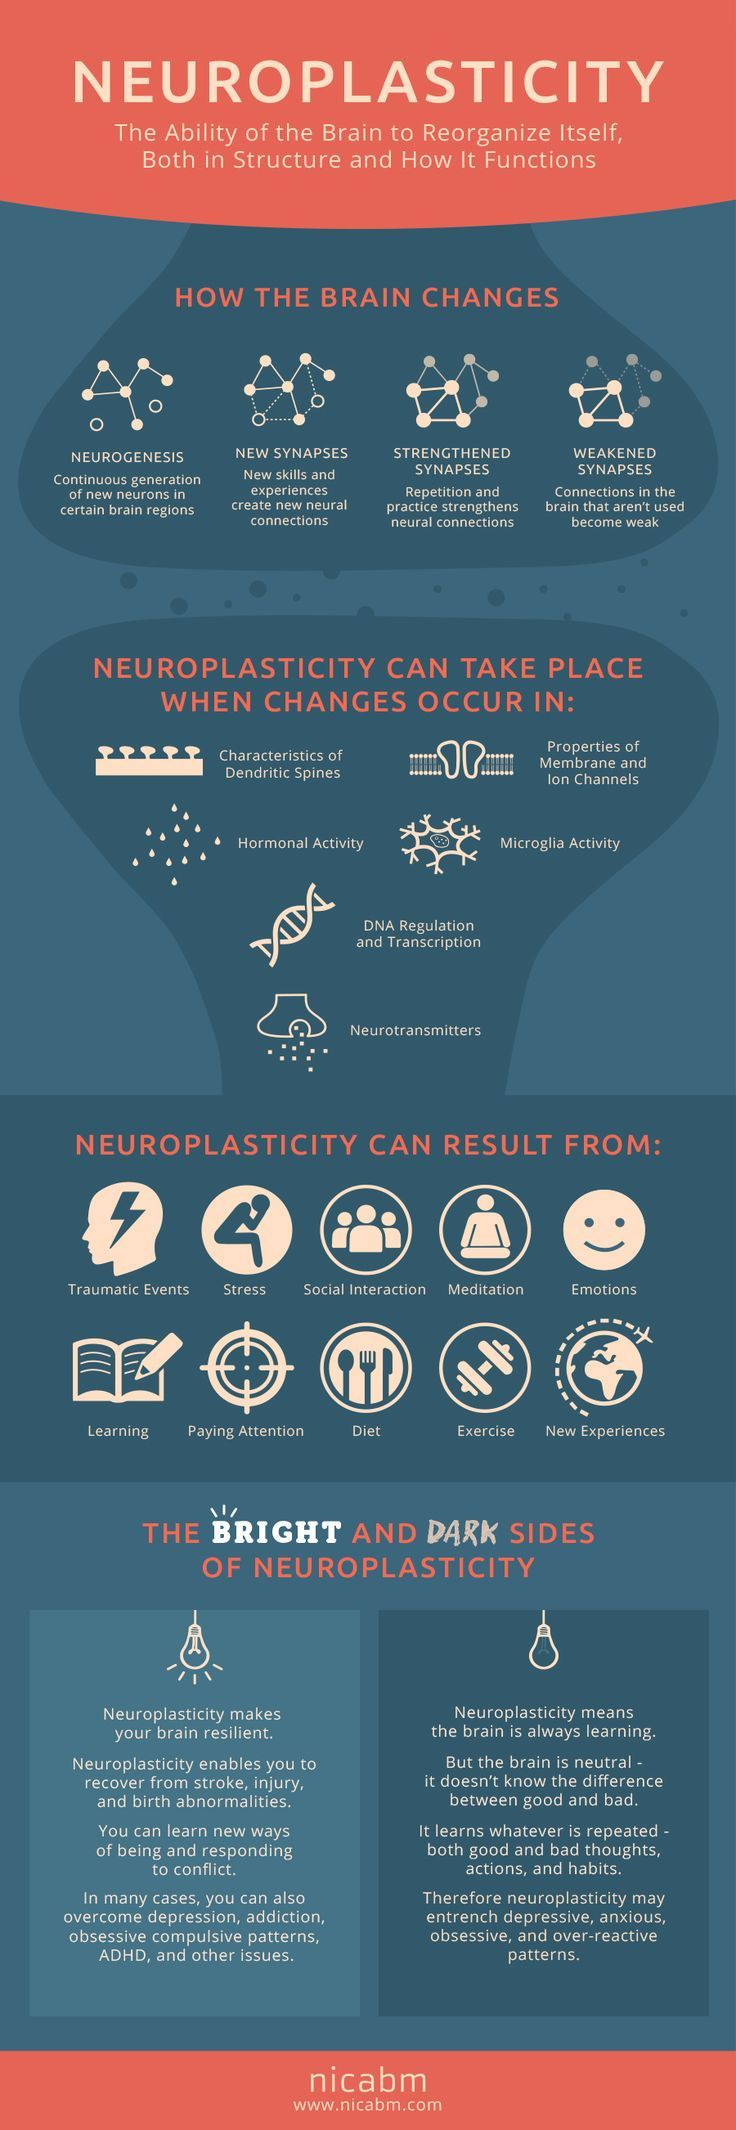 Understanding neuroplasticity and why it gives hope to everyone